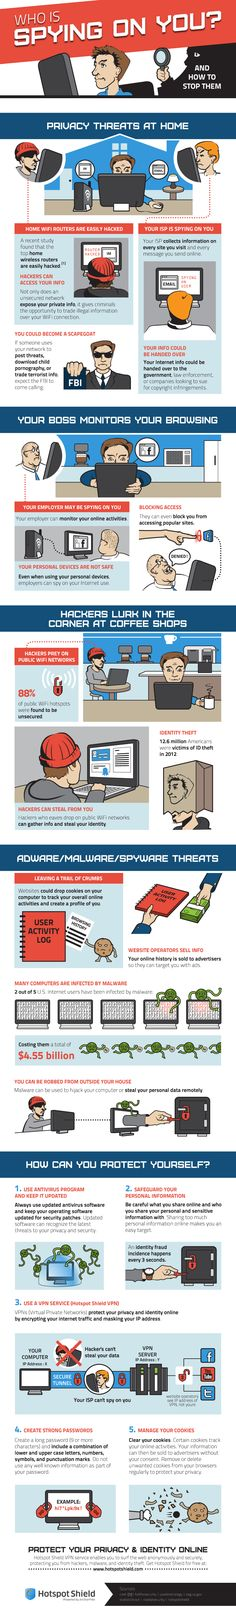 Online Spying: Who is Tracking You Online?